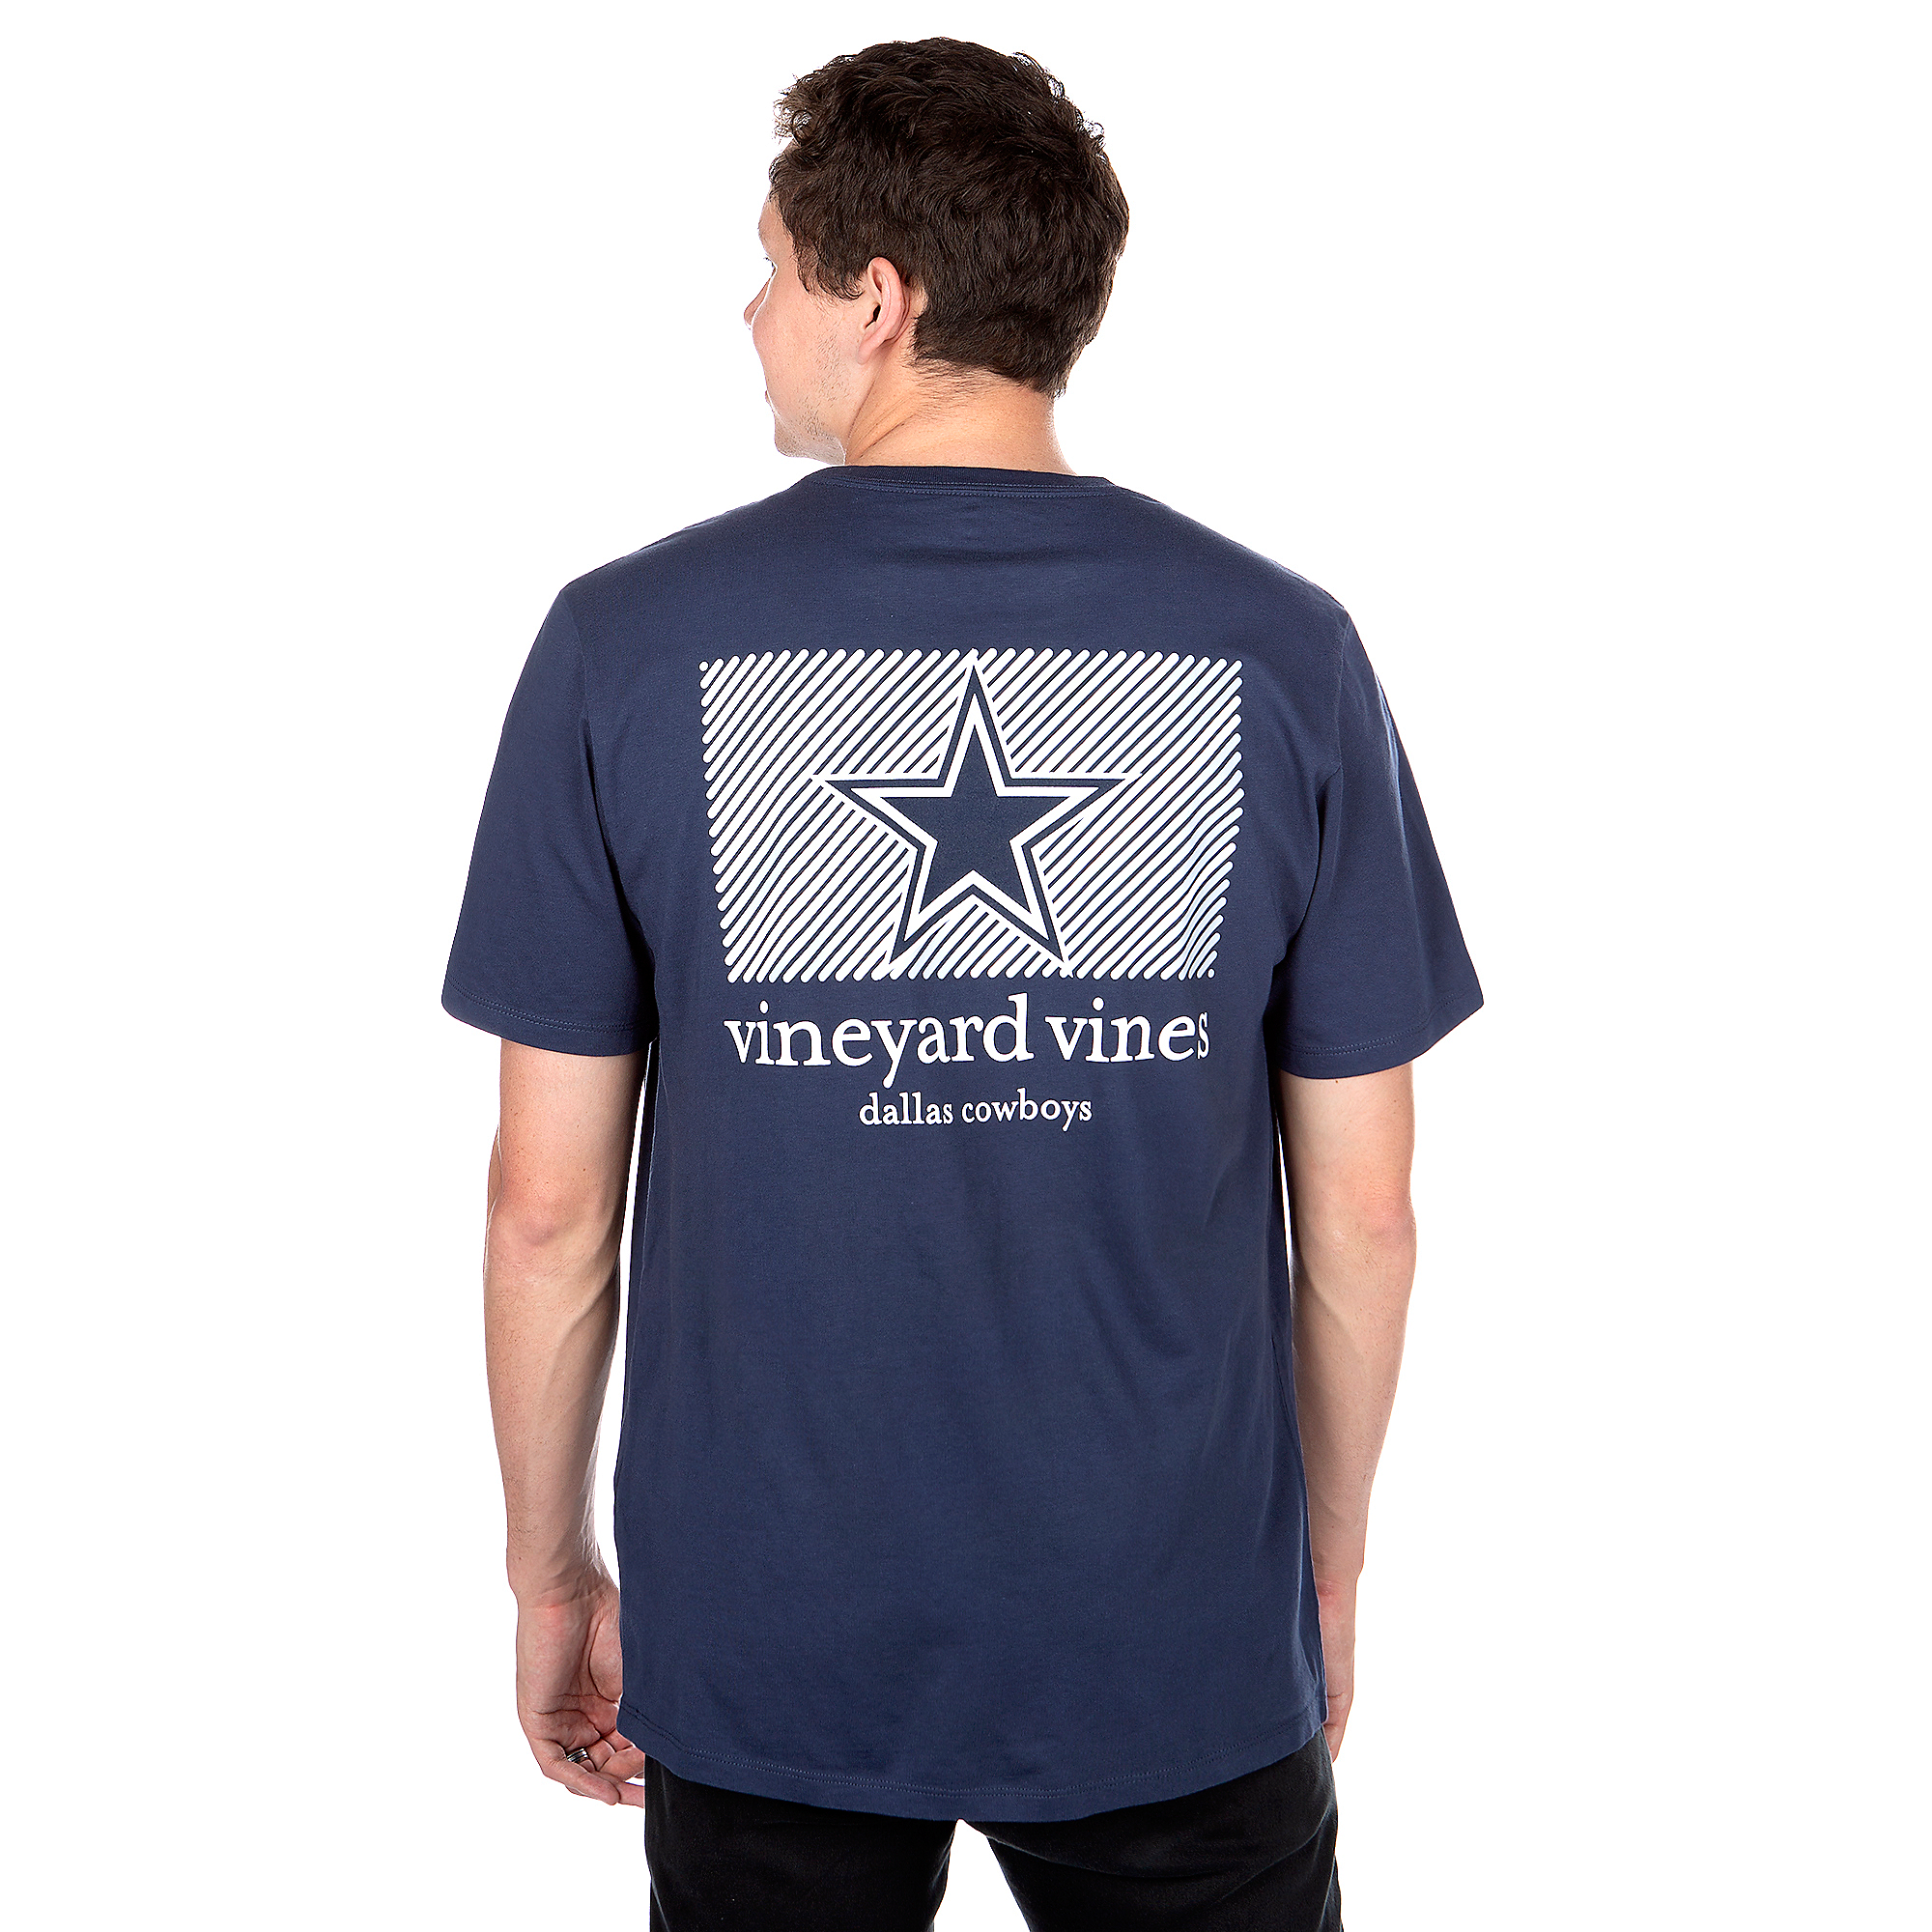 Dallas Cowboys Vineyard Vines Diagonal Stripe Short Sleeve T-Shirt